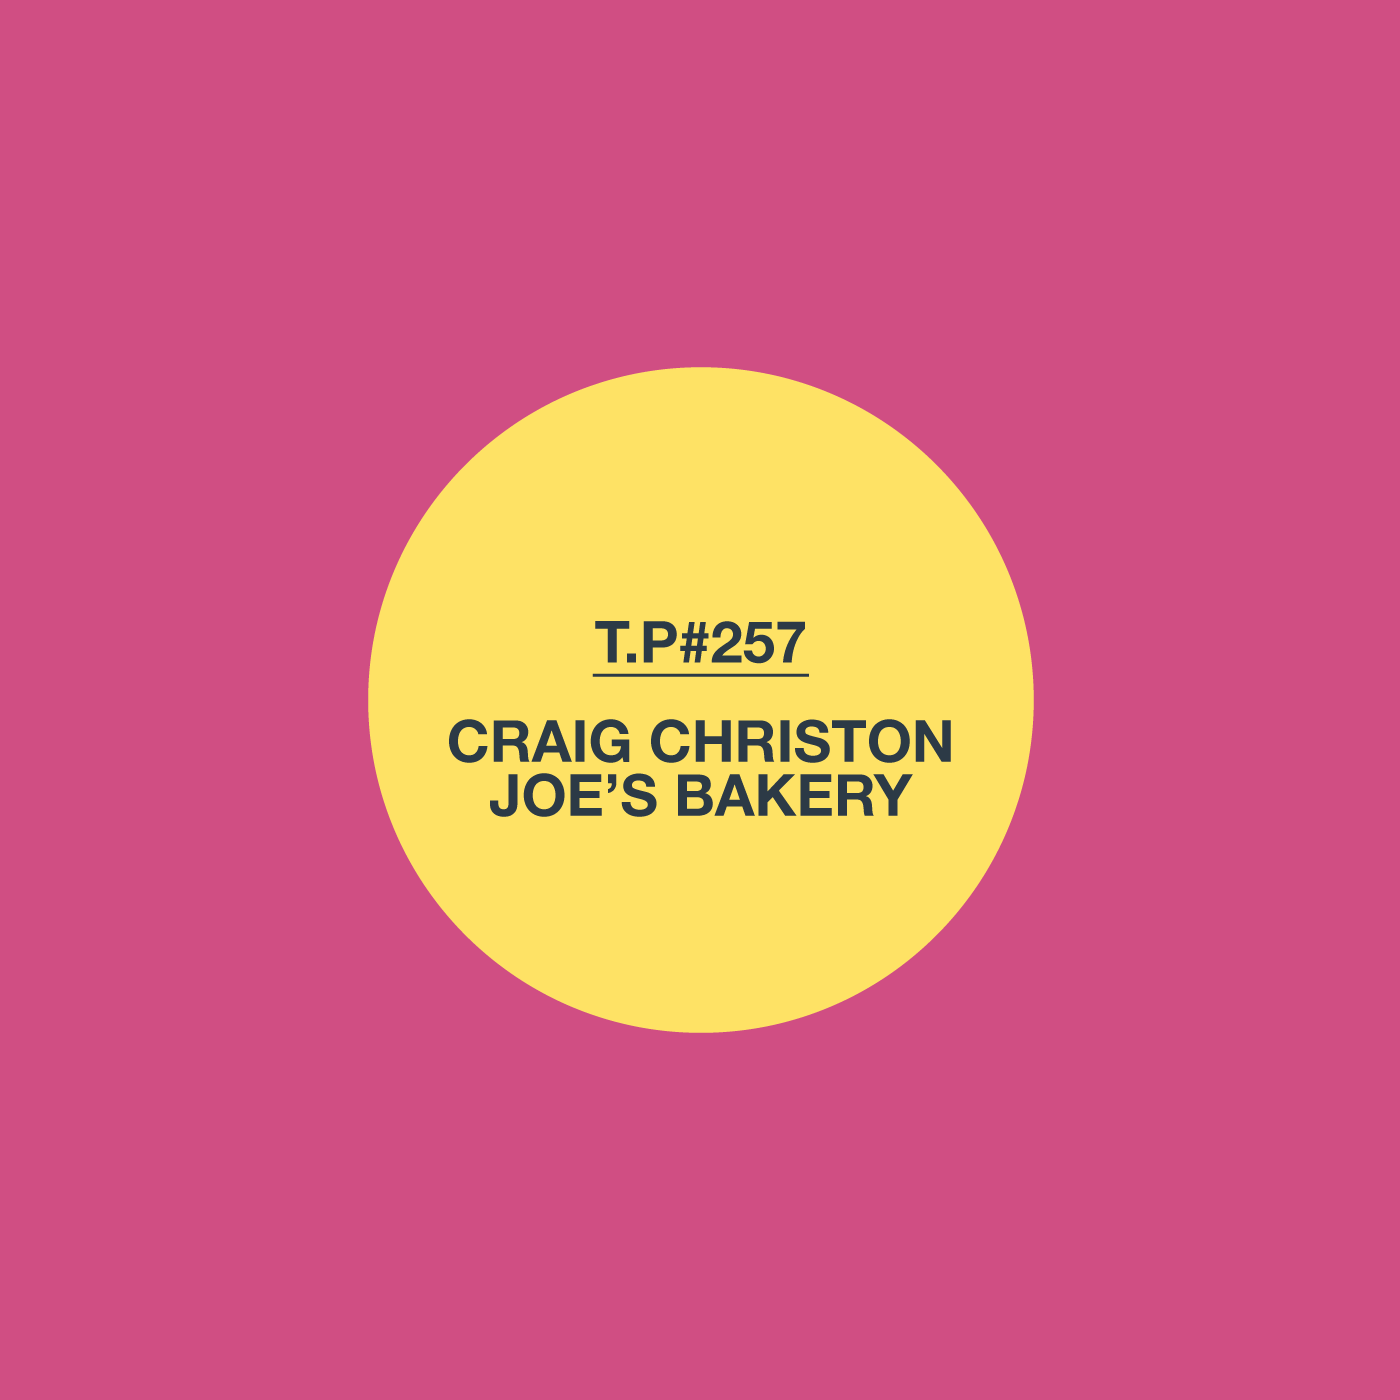 Craig Christon, Mix, Test Pressing, Joe's Bakery, Outlaws Yacht Club